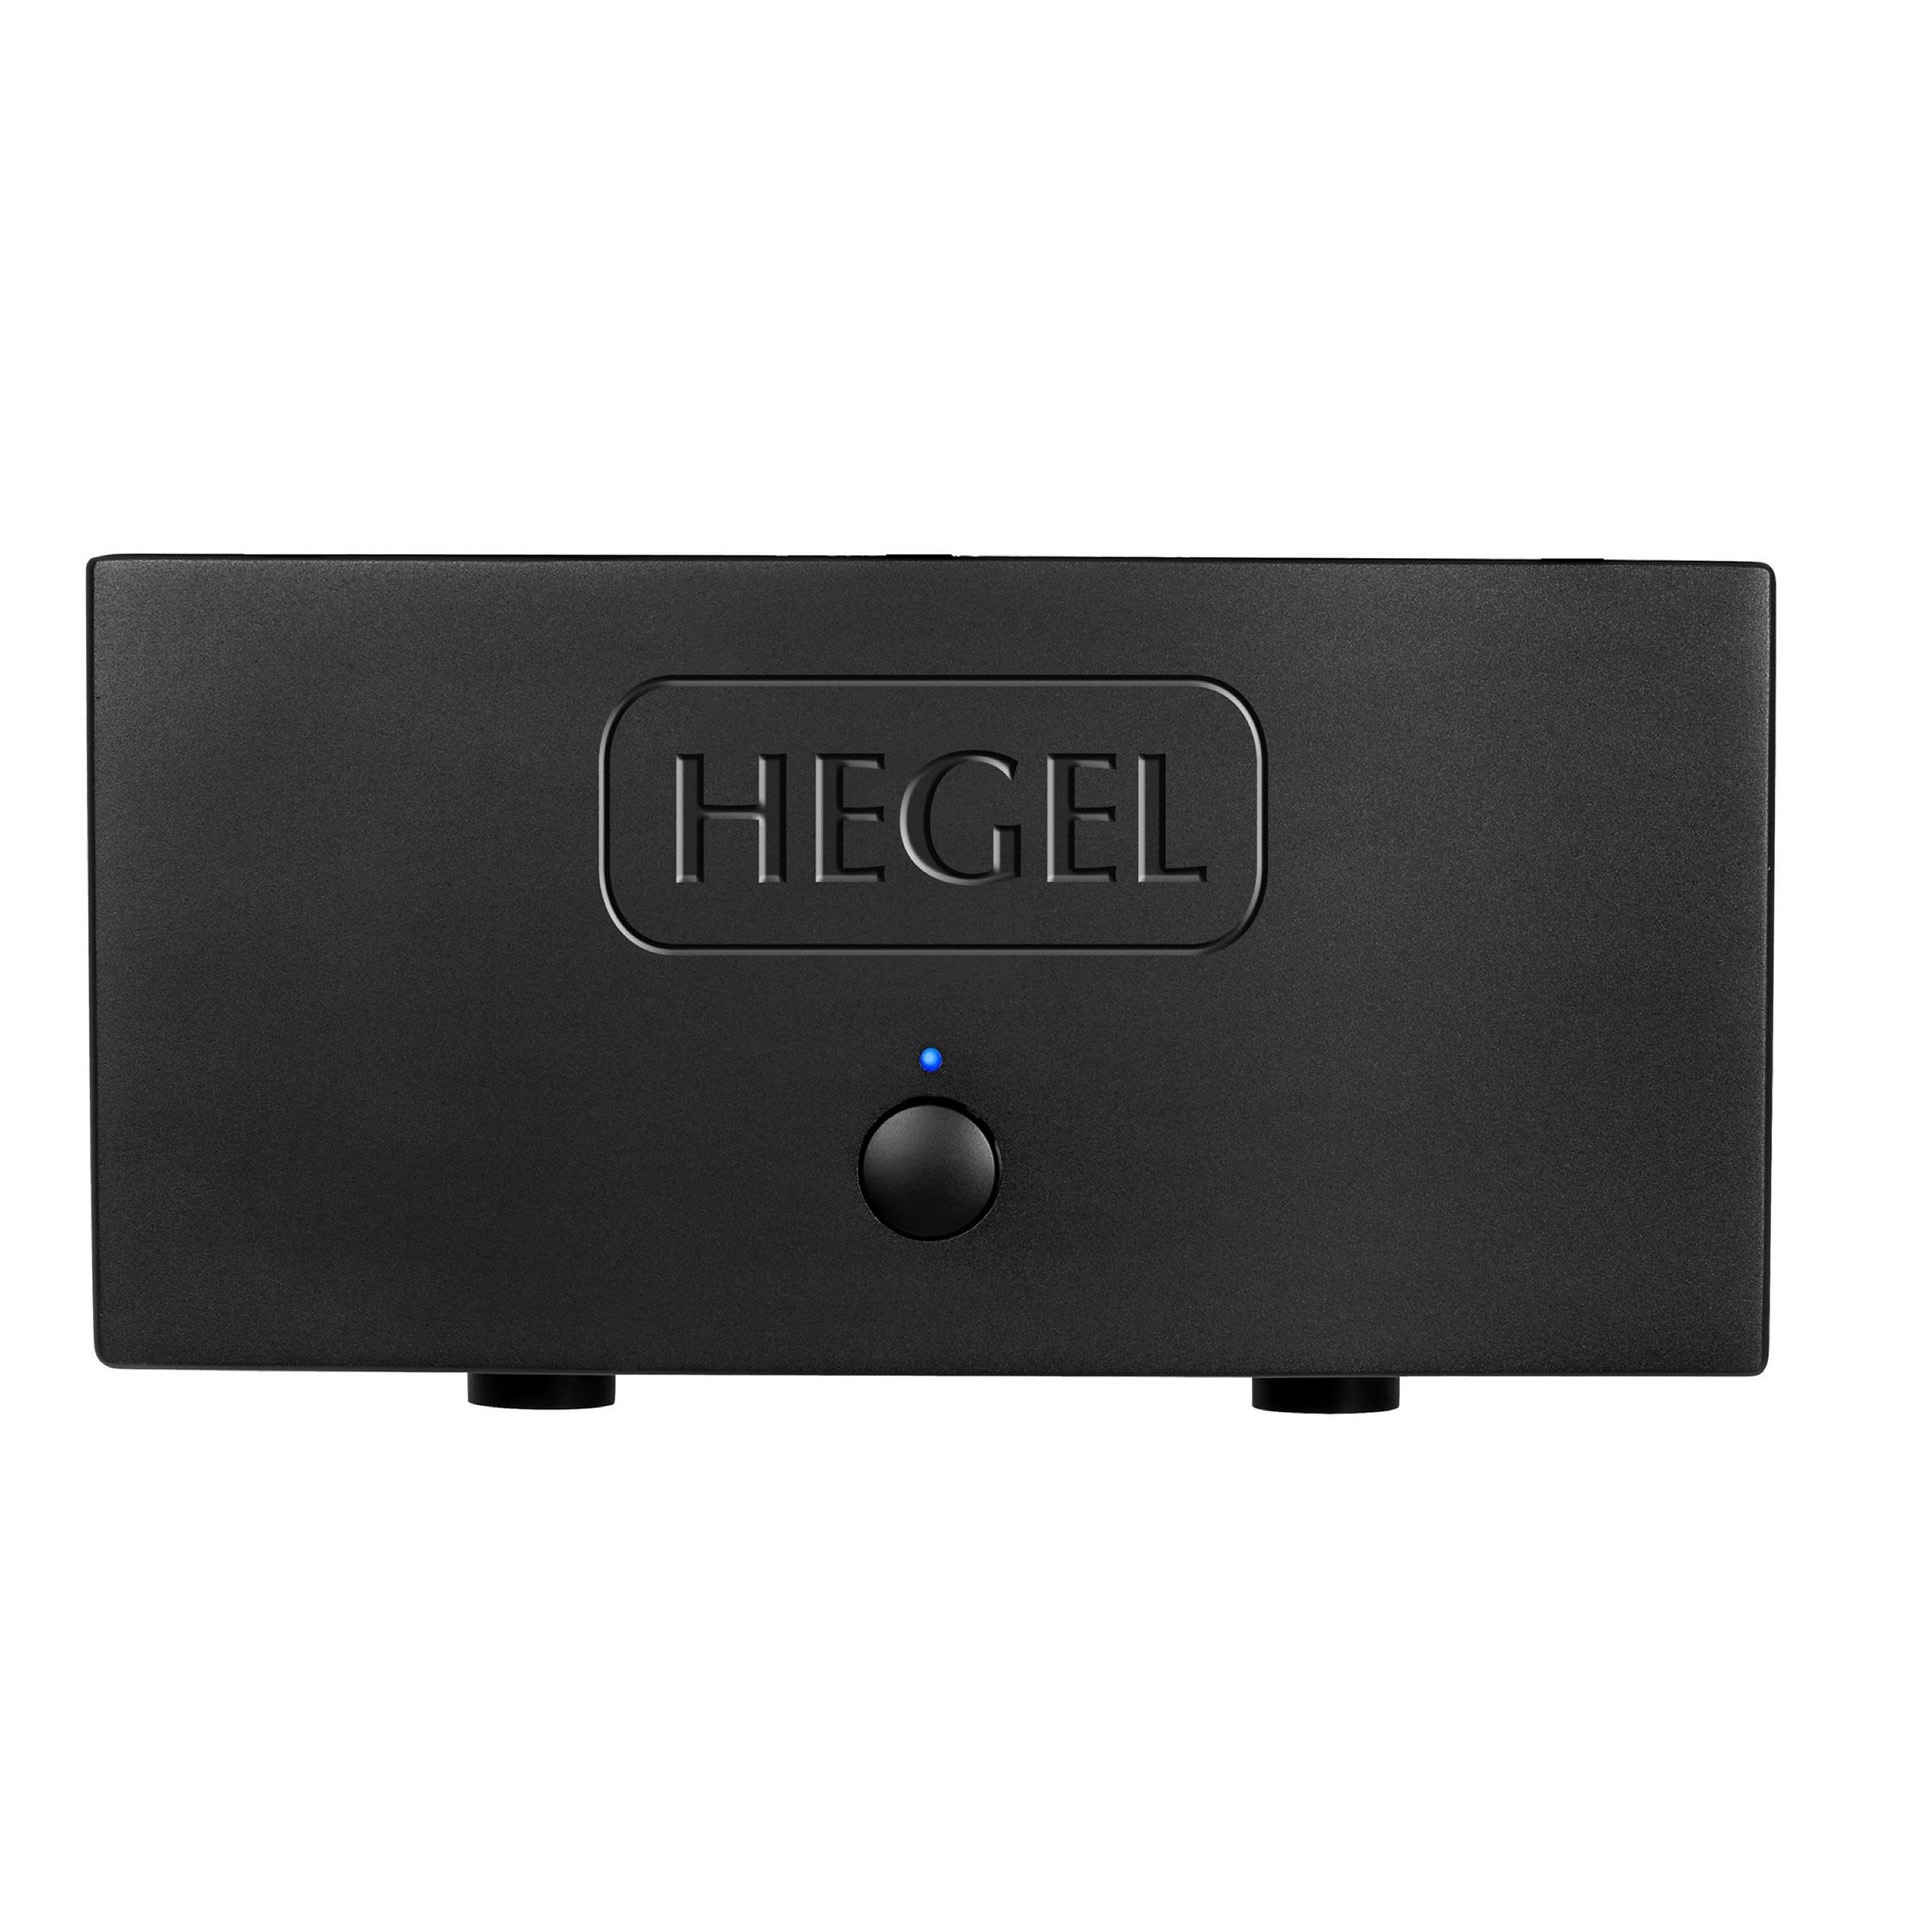 Hegel H30 - Chattelin Audio Systems